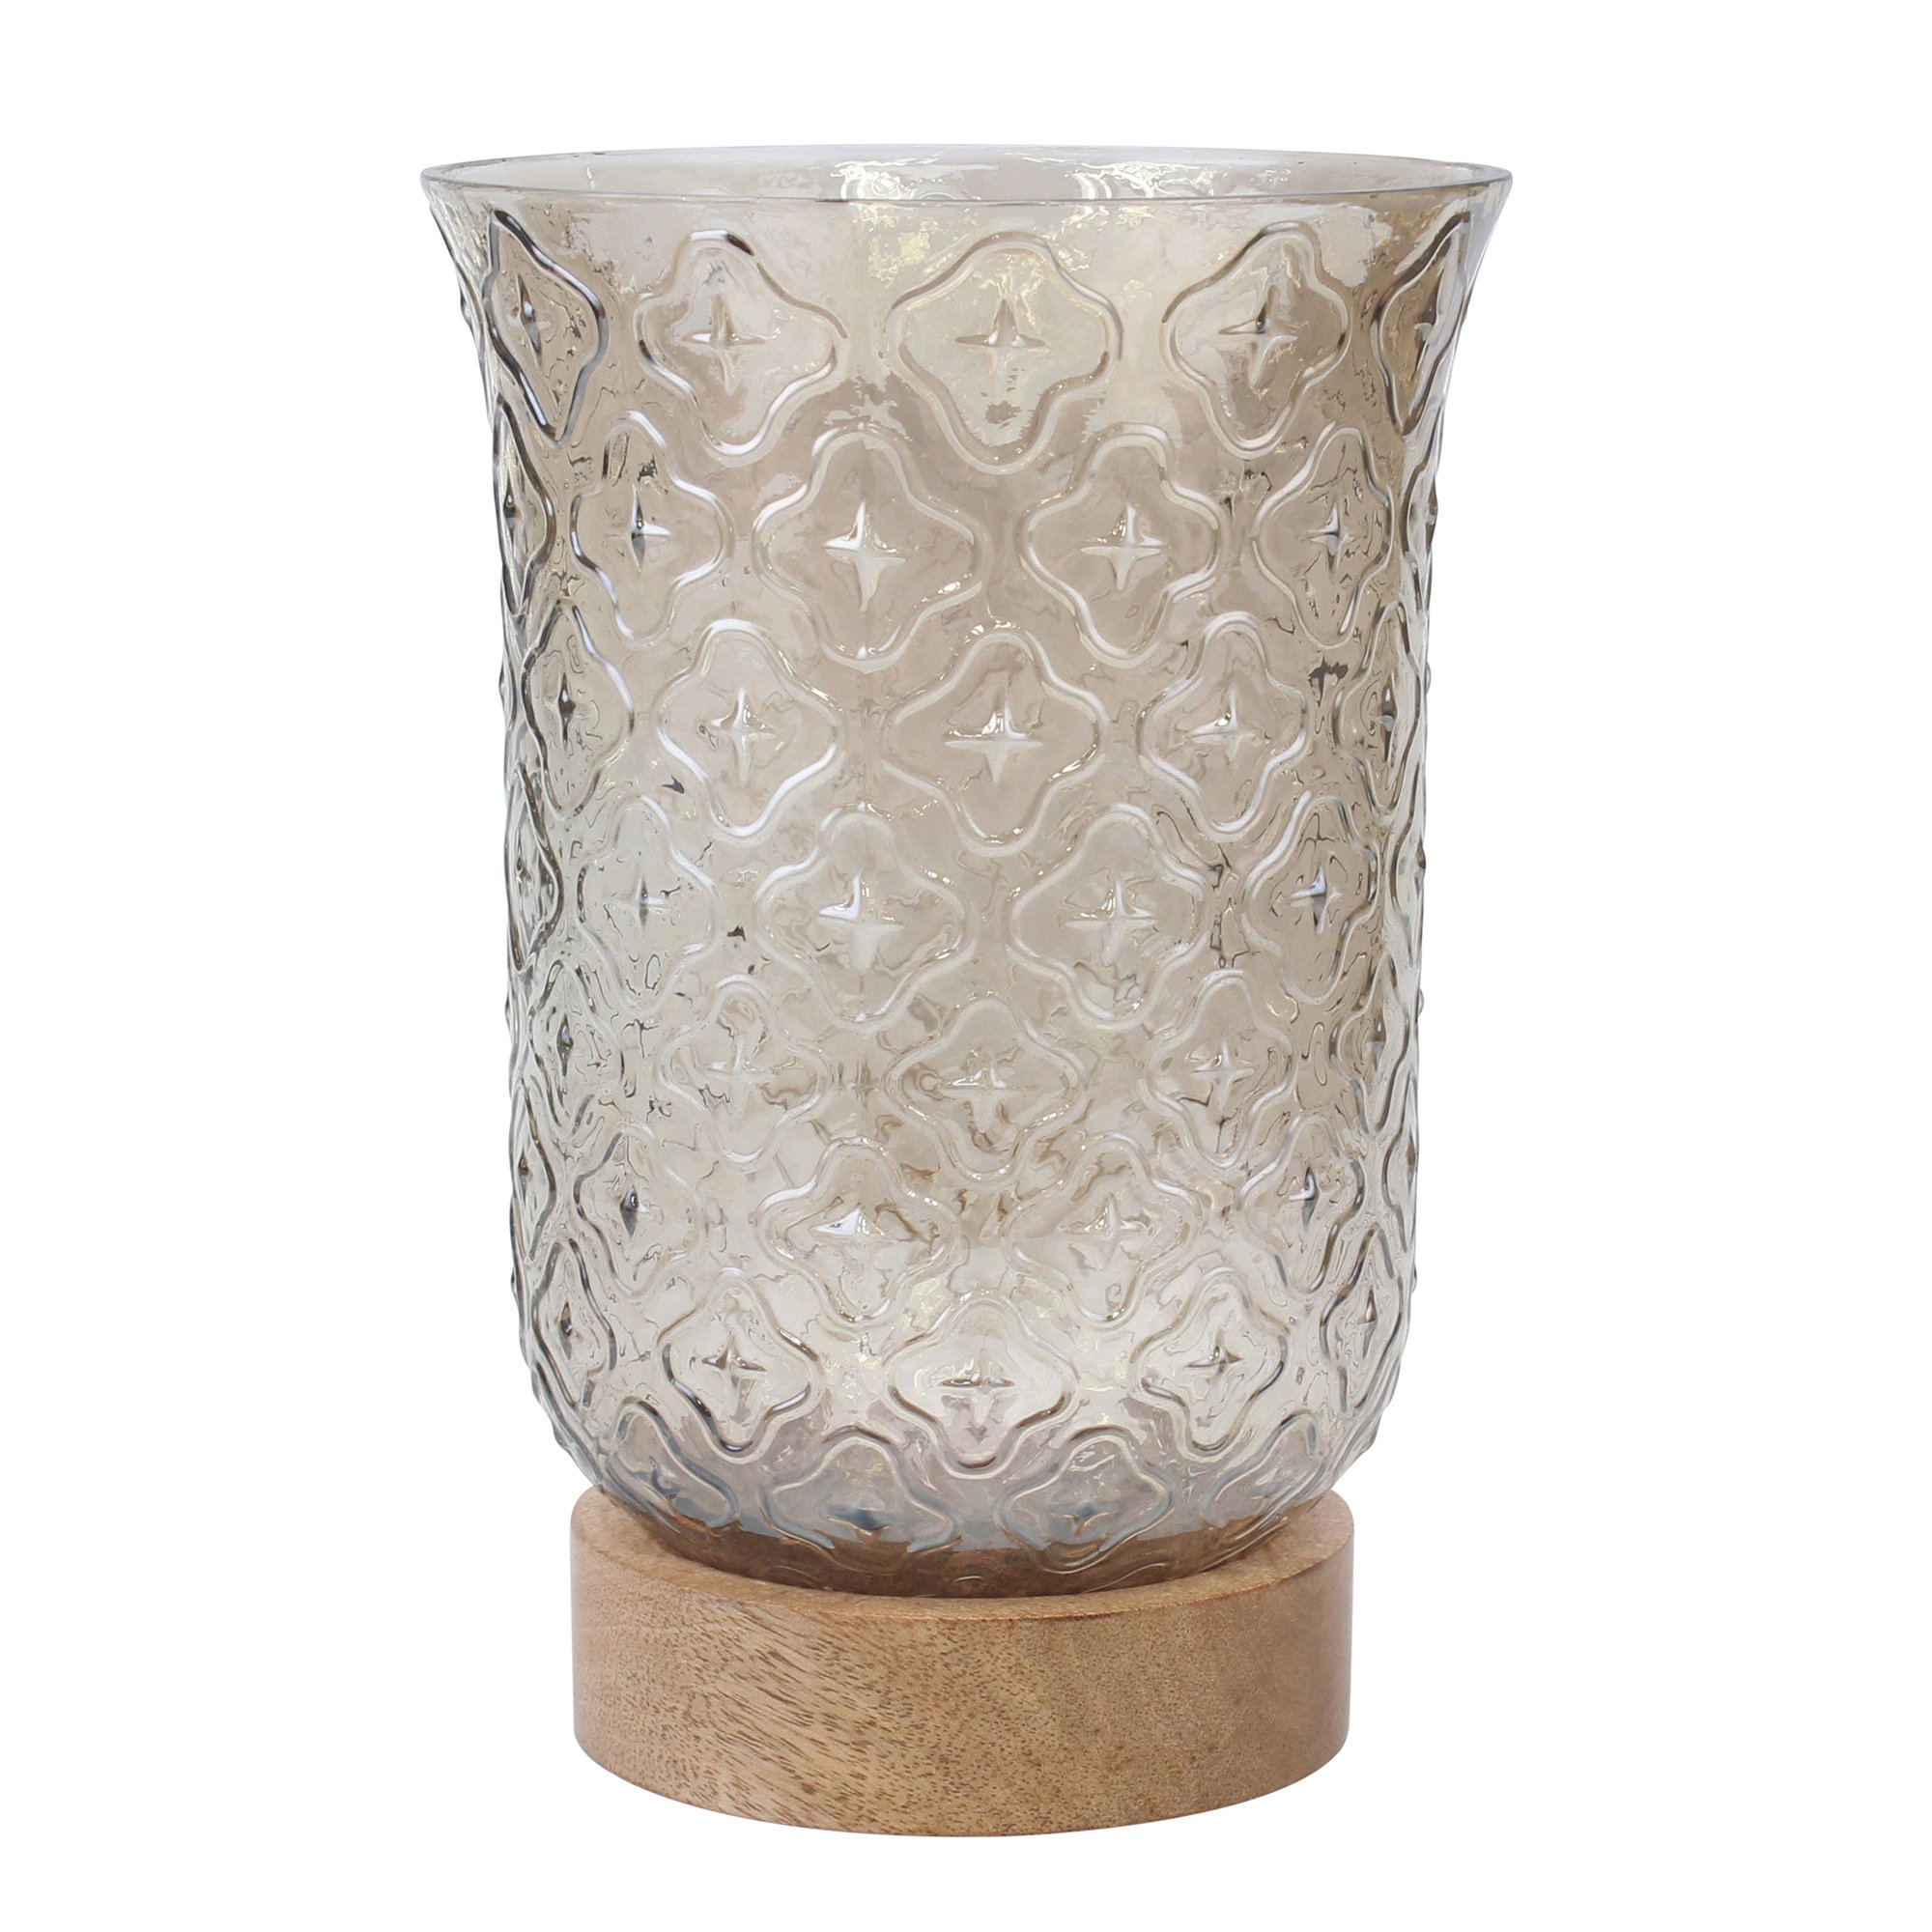 Stonebriar Pressed Vintage Luster Glass Hurricane Candle Holder and Natural Wood Base, Decorative Antique Design for Wedding Decorations, Parties, or Everyday Home Decor